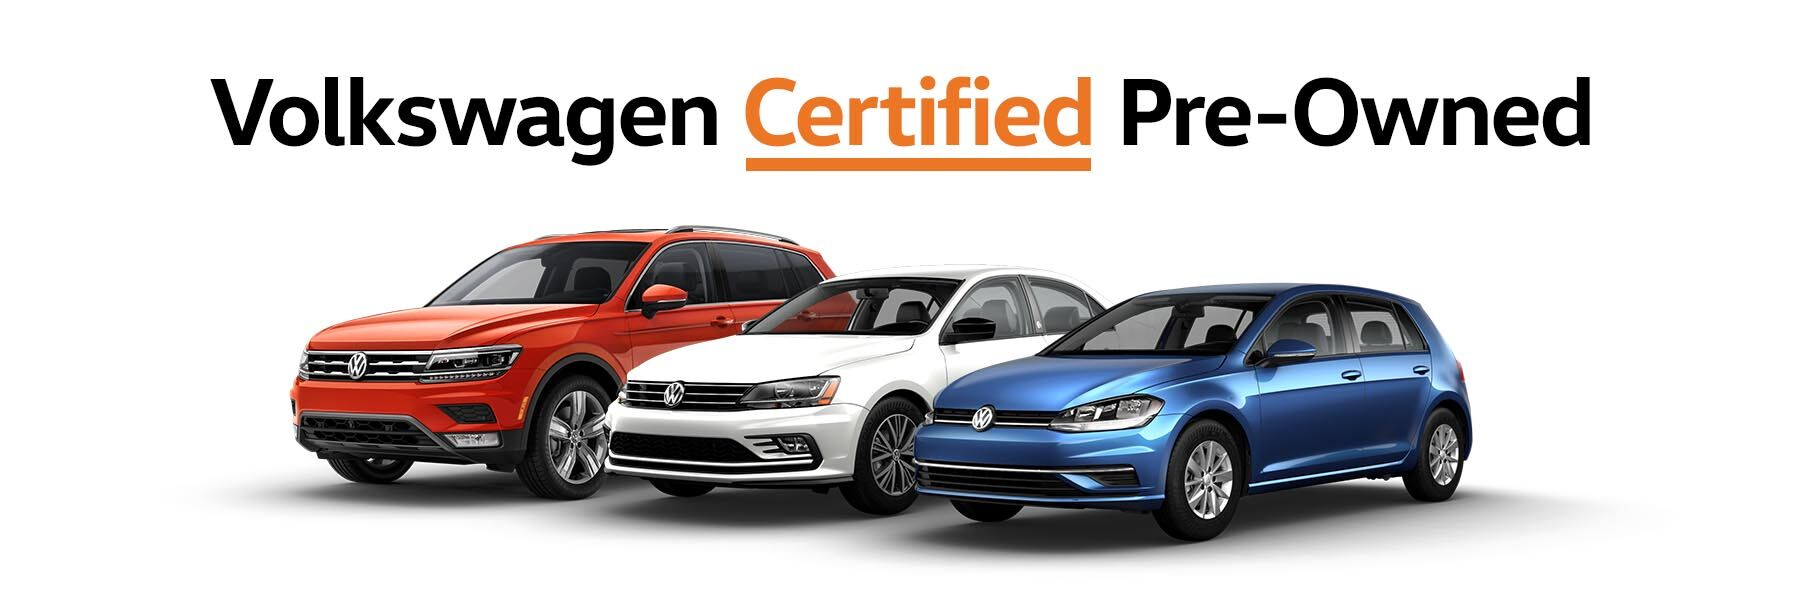 Volkswagen Certified Pre-Owned in San Diego, CA